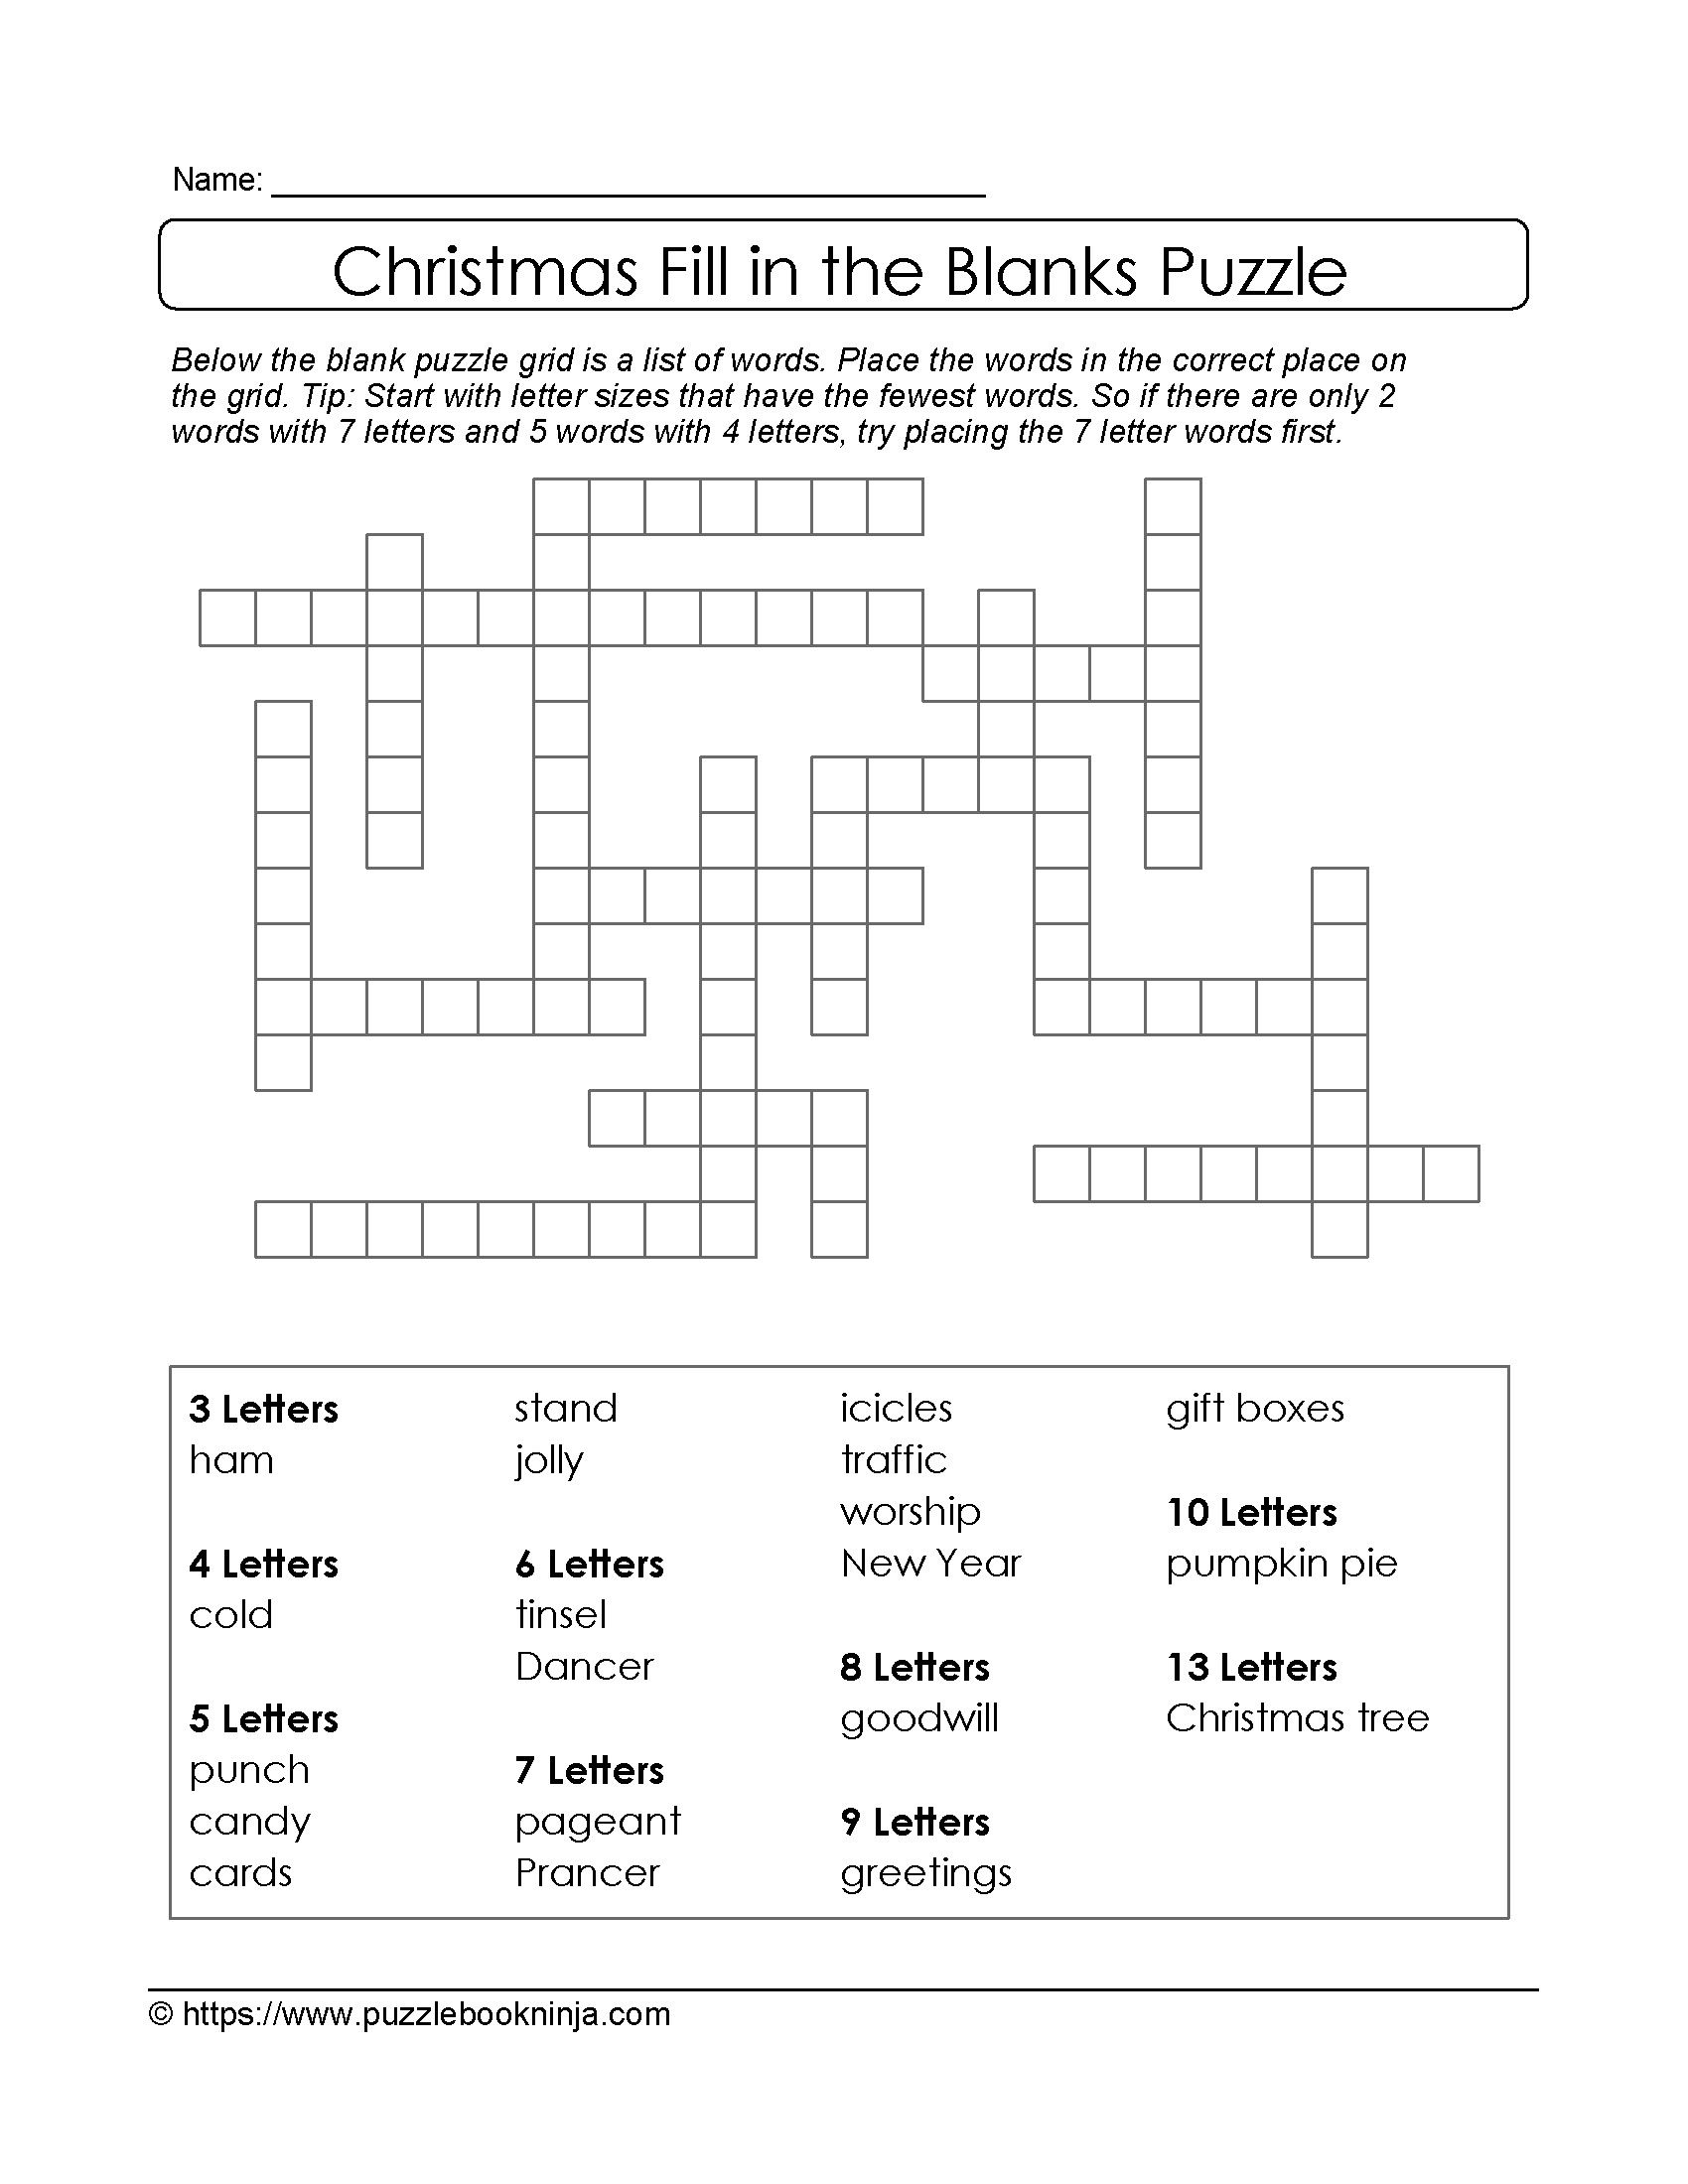 Freebie Xmas Puzzle To Print. Fill In The Blanks Crossword Like - 9 Letter Word Puzzle Printable